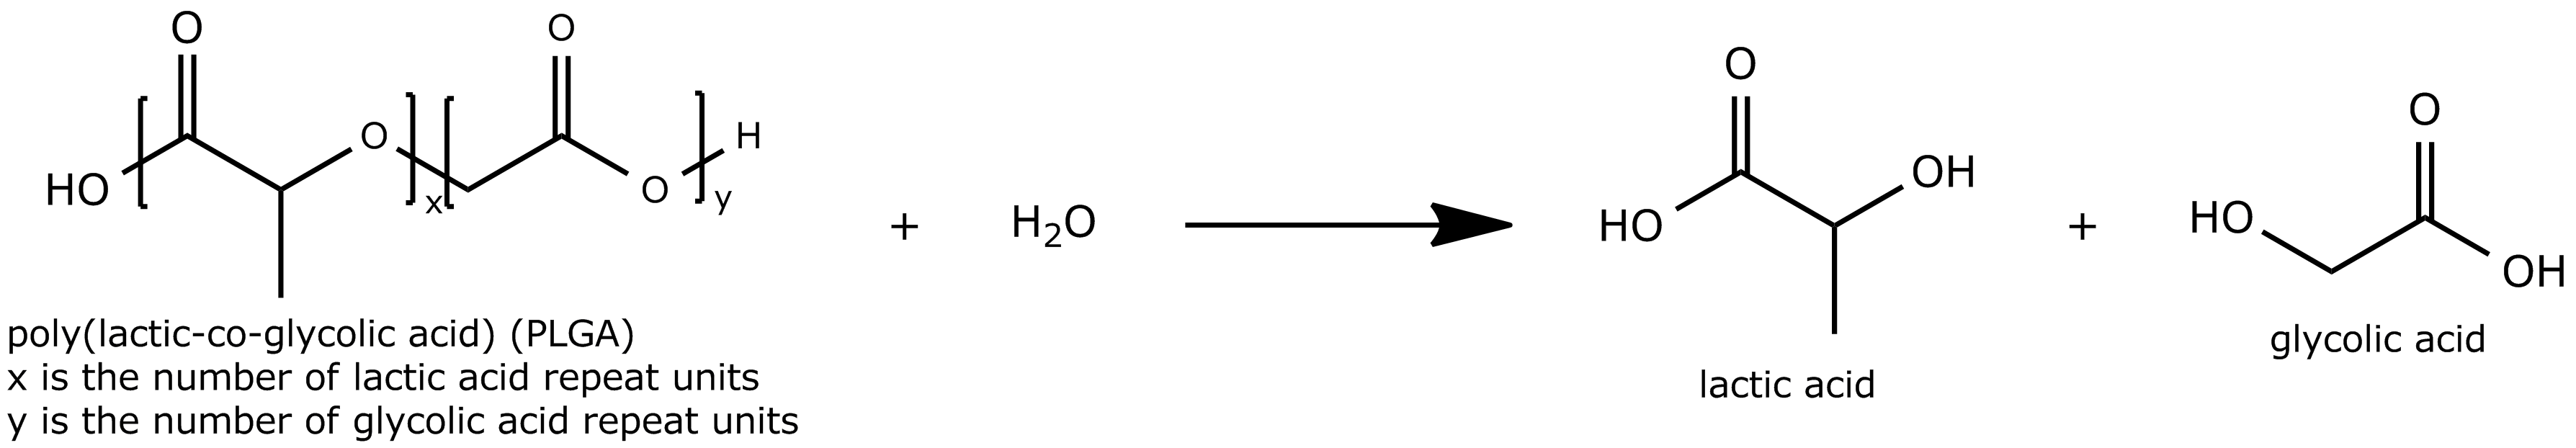 Figure 2: Poly(lactic-co-glycolic acid) (PLGA) is a biologically safe copolymer of lactic acid and glycolic acid. It hydrolyzes in water and has minimal toxicity.